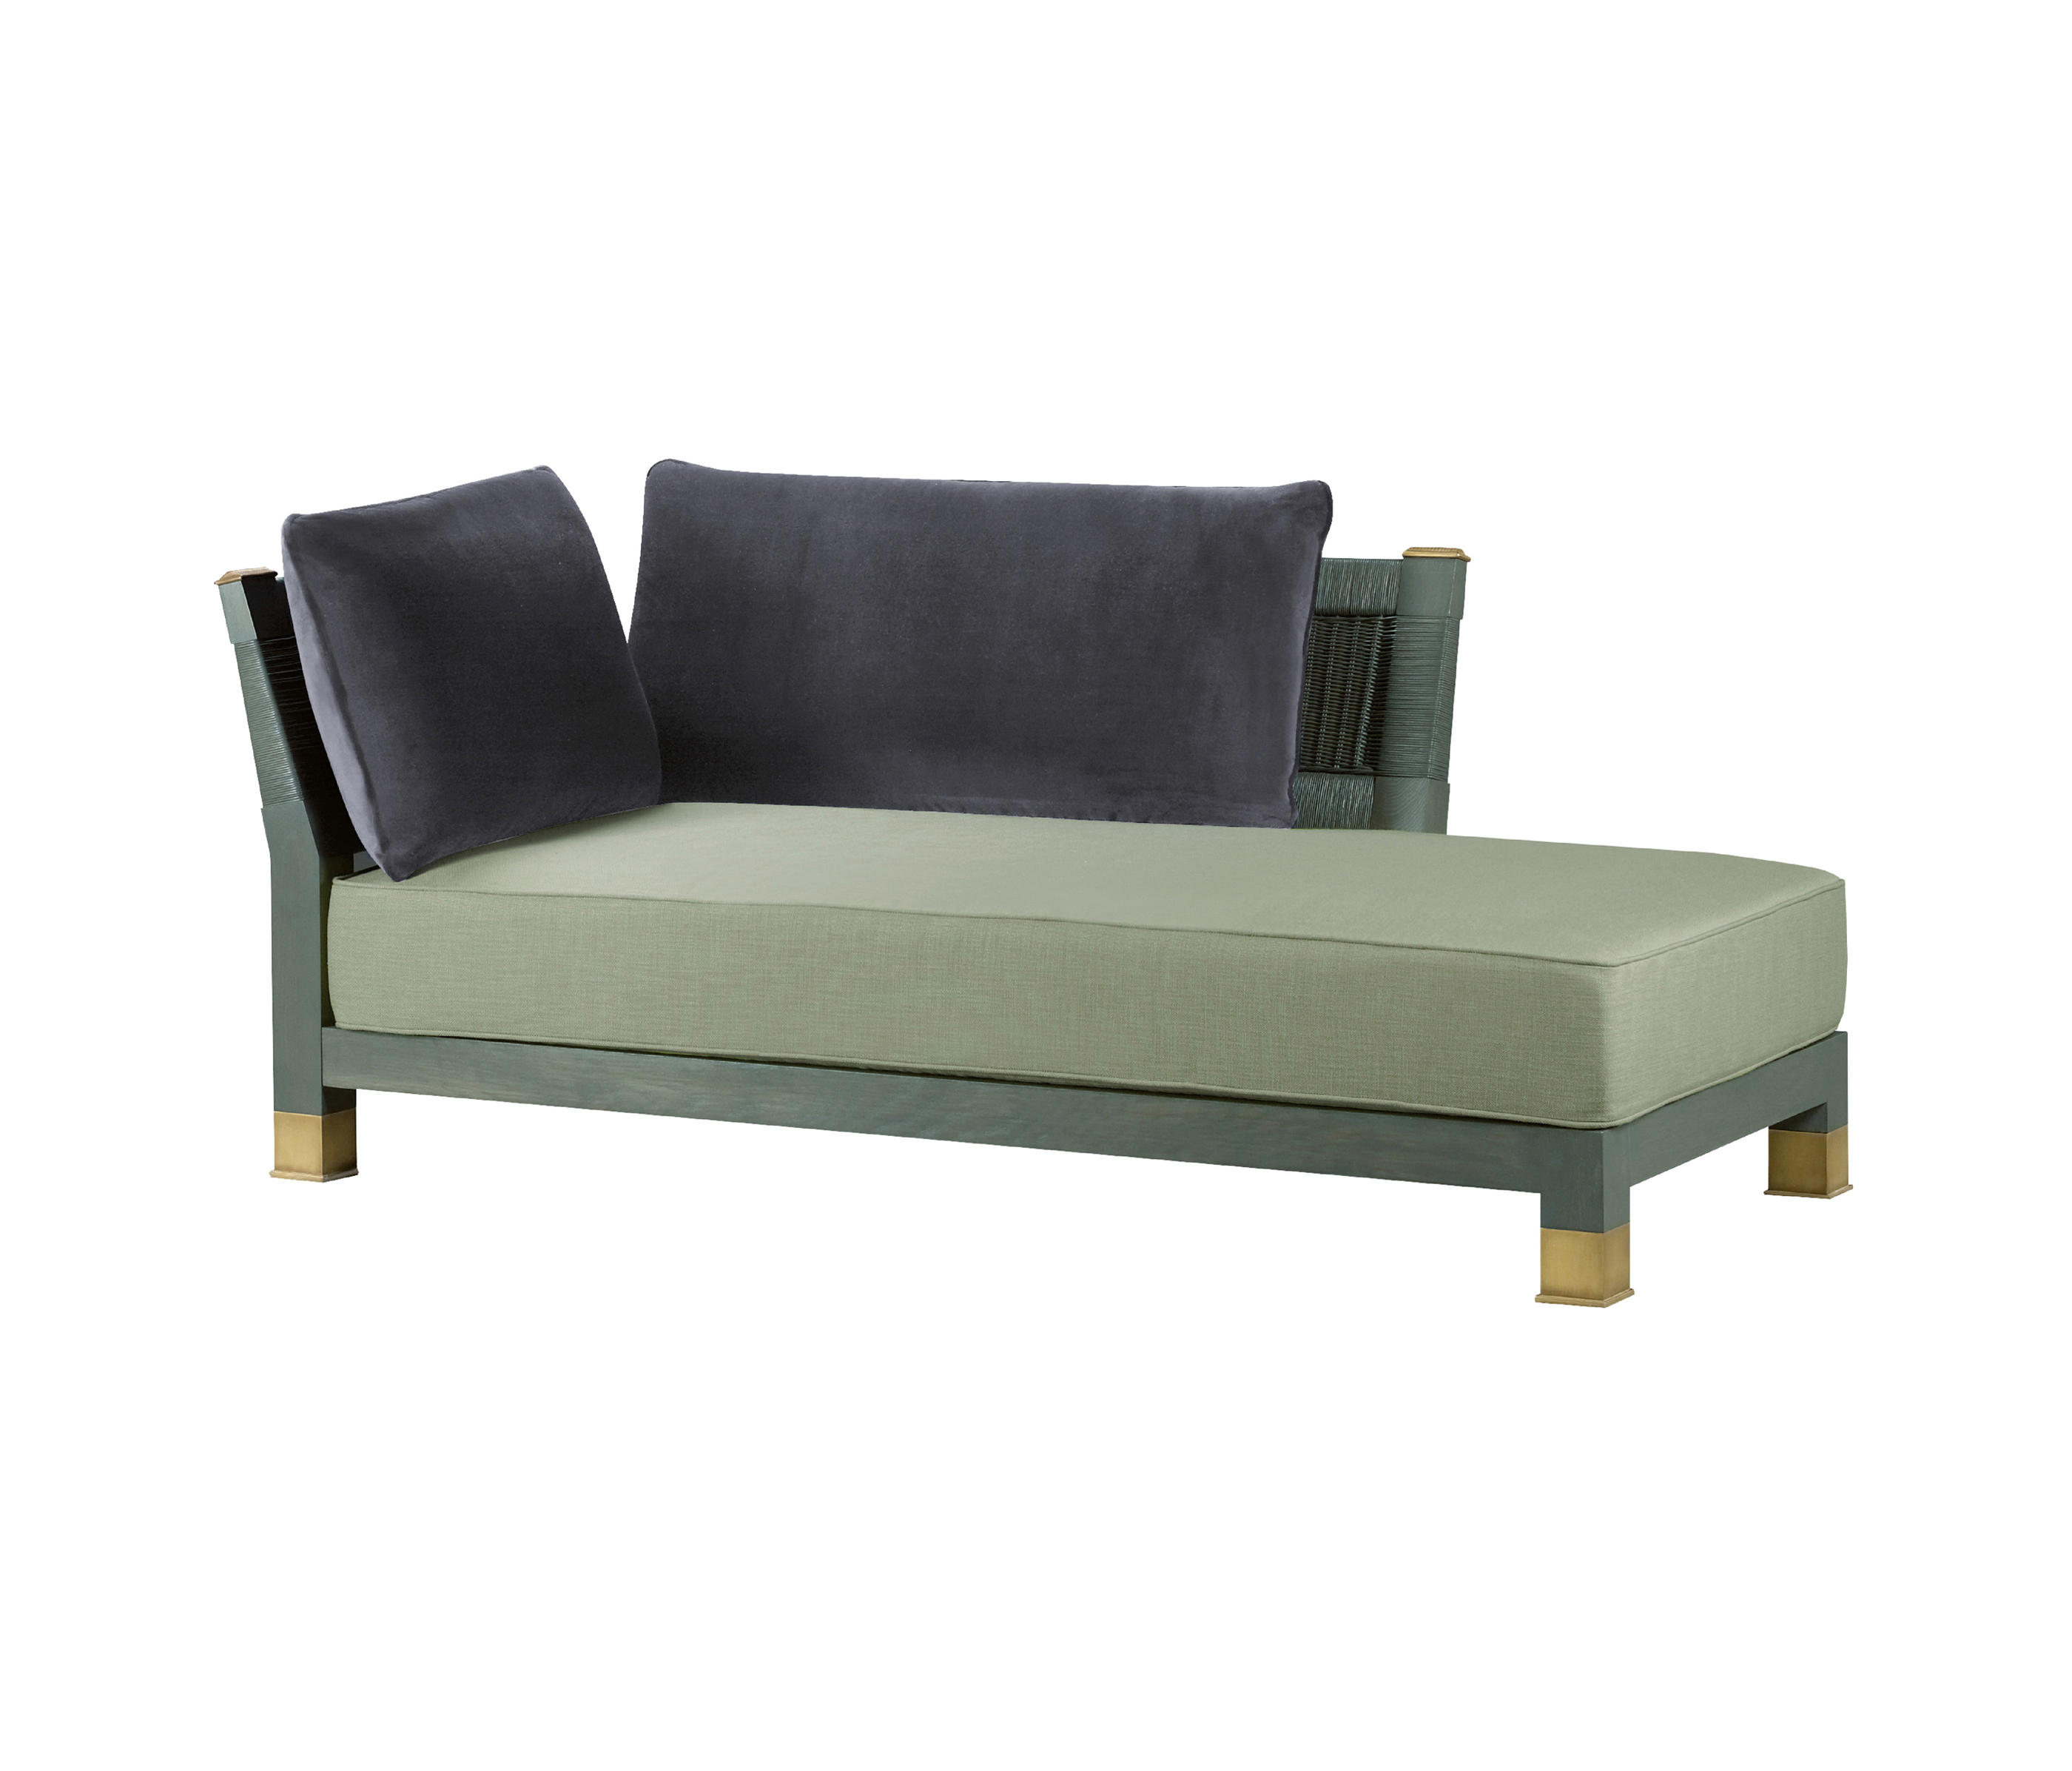 Moltrasio chaise longue garden sofas from promemoria for Chaise longue sofa